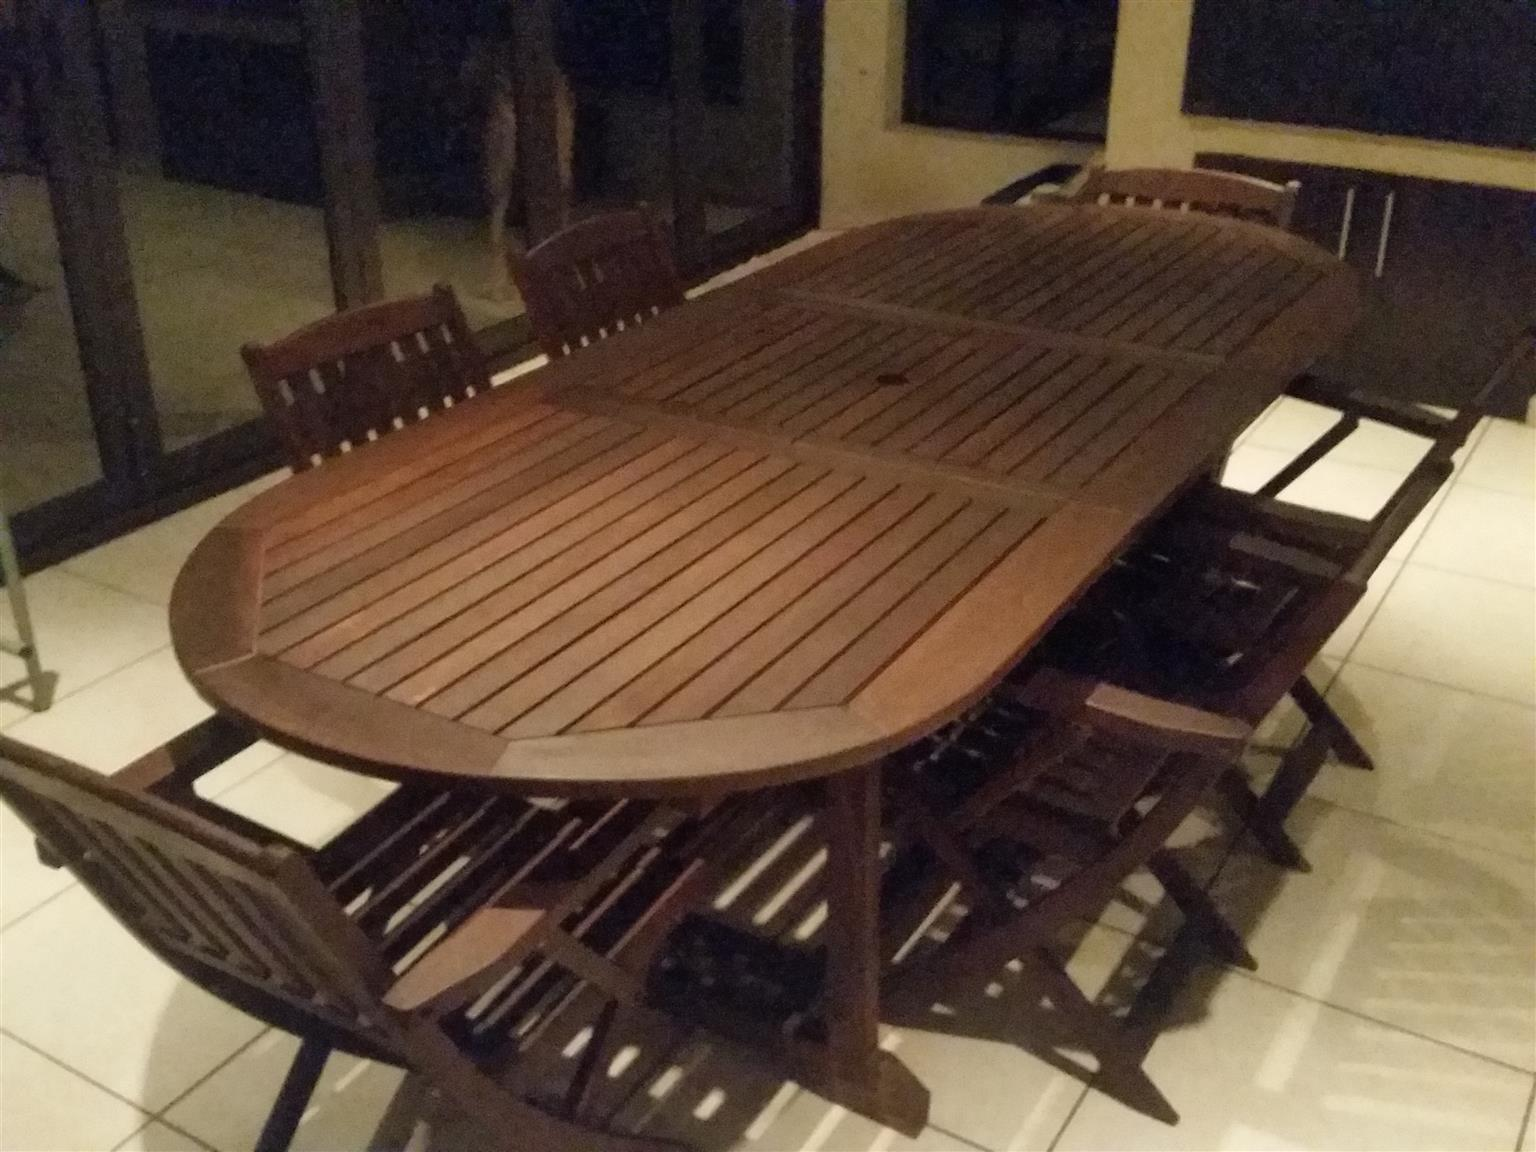 6 Seater wooden patio set